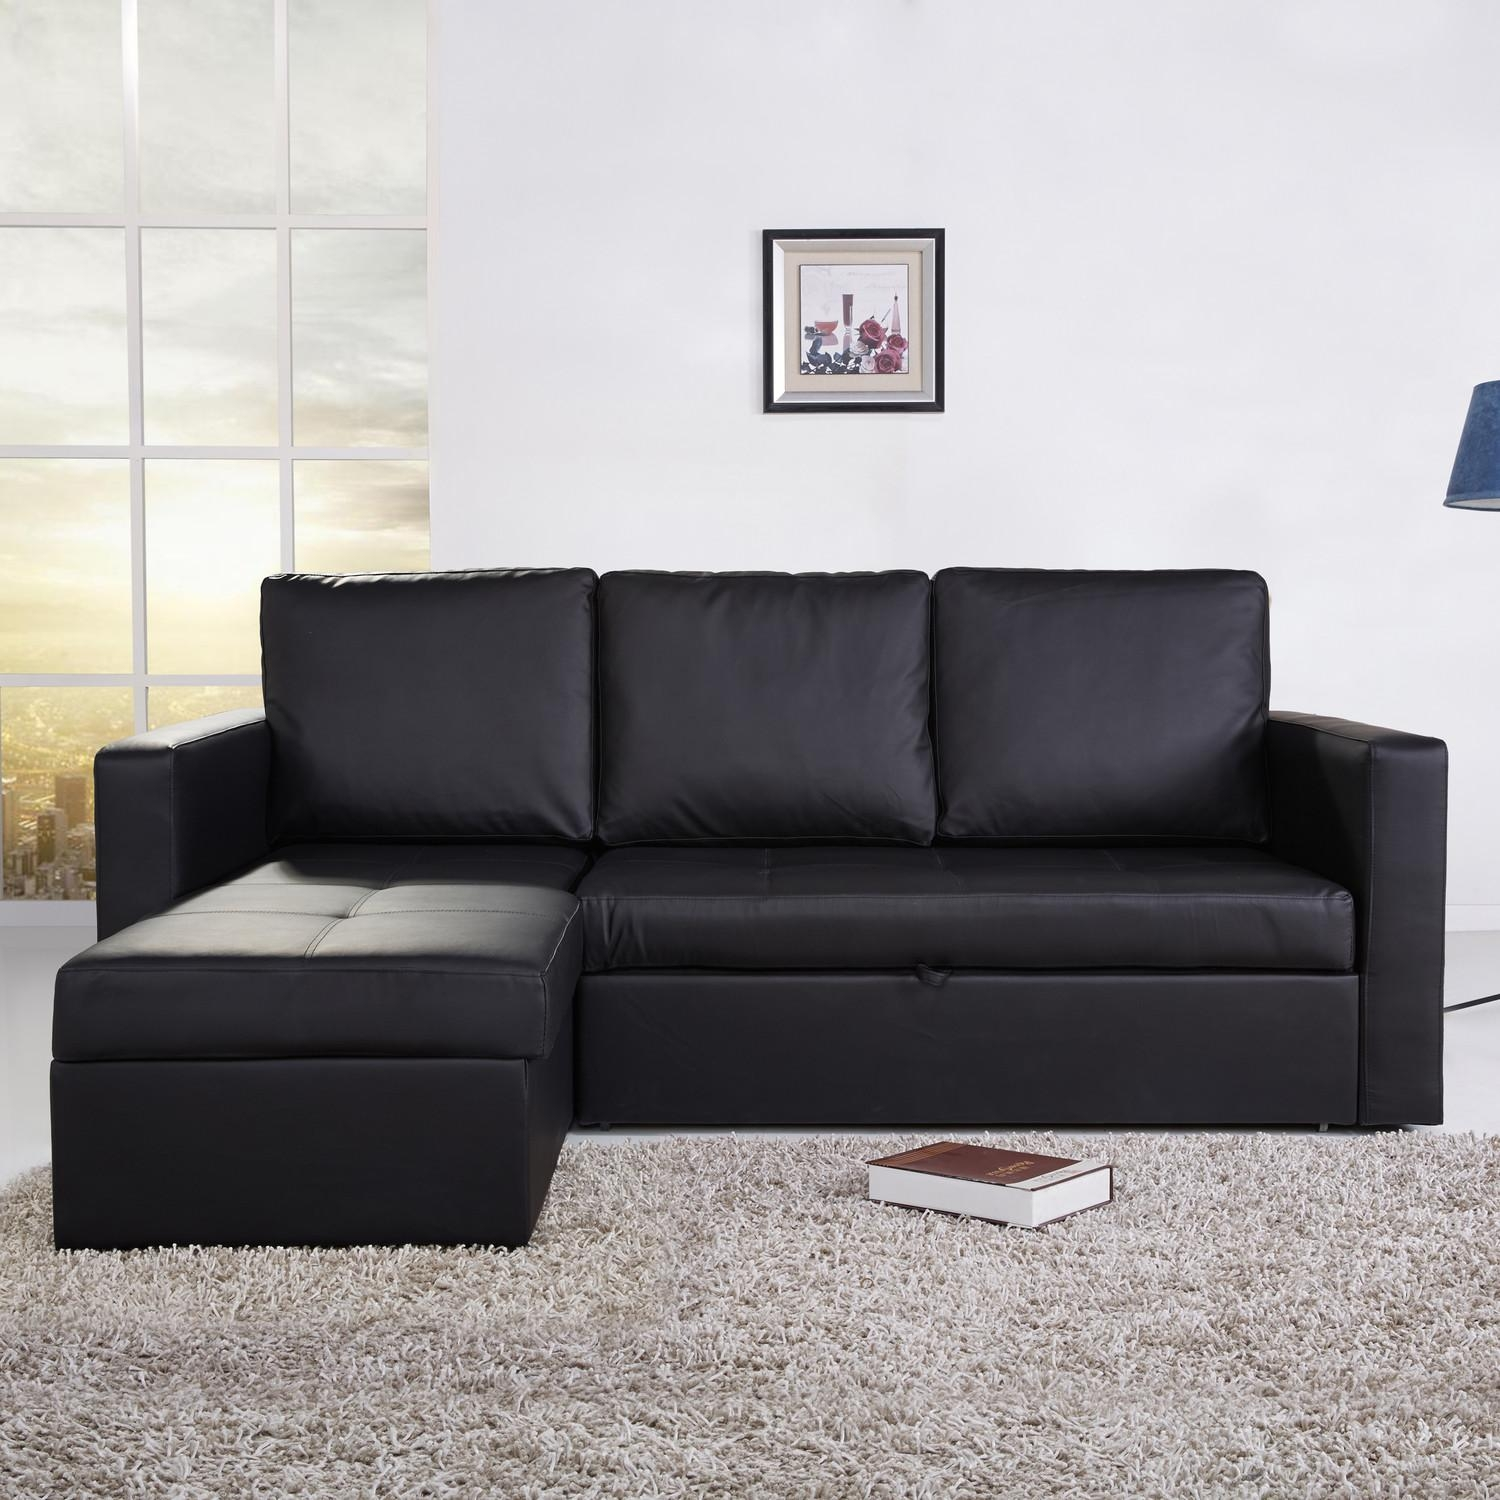 Small Black Leather Sectional Couch With Chaise And Pull Out Bed Throughout Small Black Sofas (Image 13 of 20)